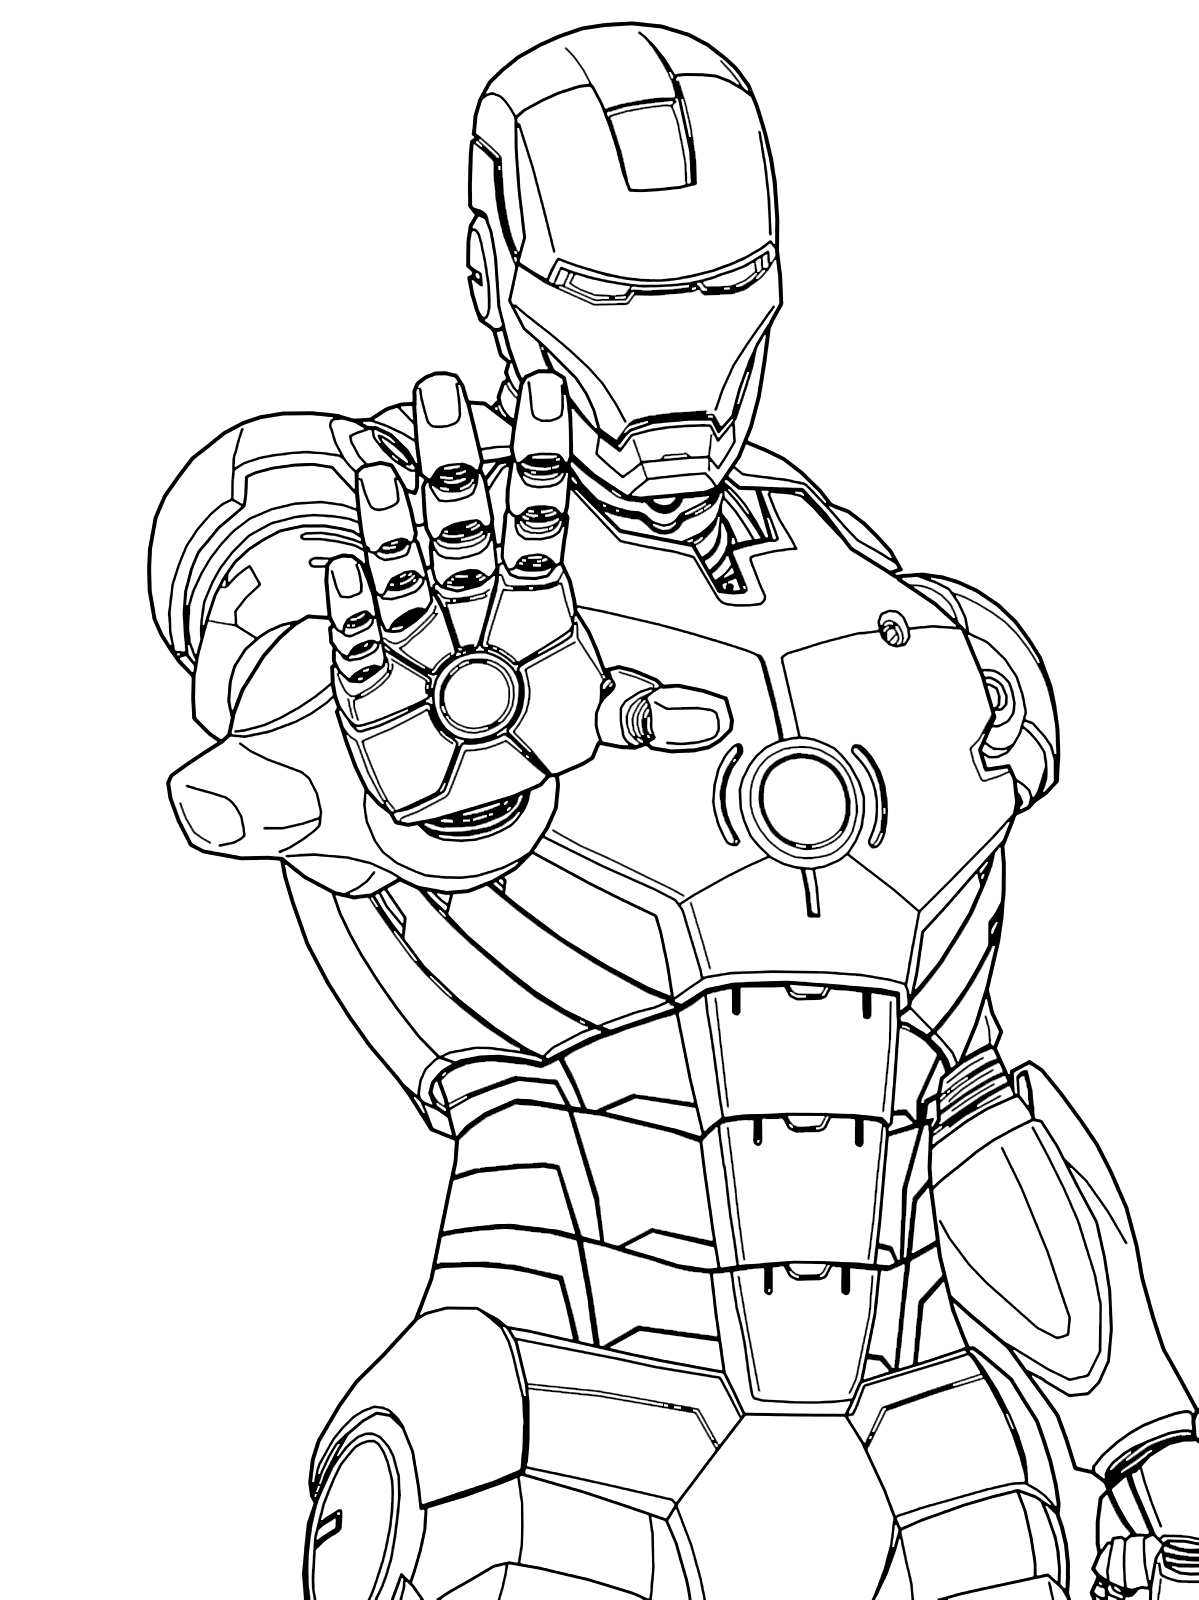 ironman printables top 20 free printable iron man coloring pages online ironman printables